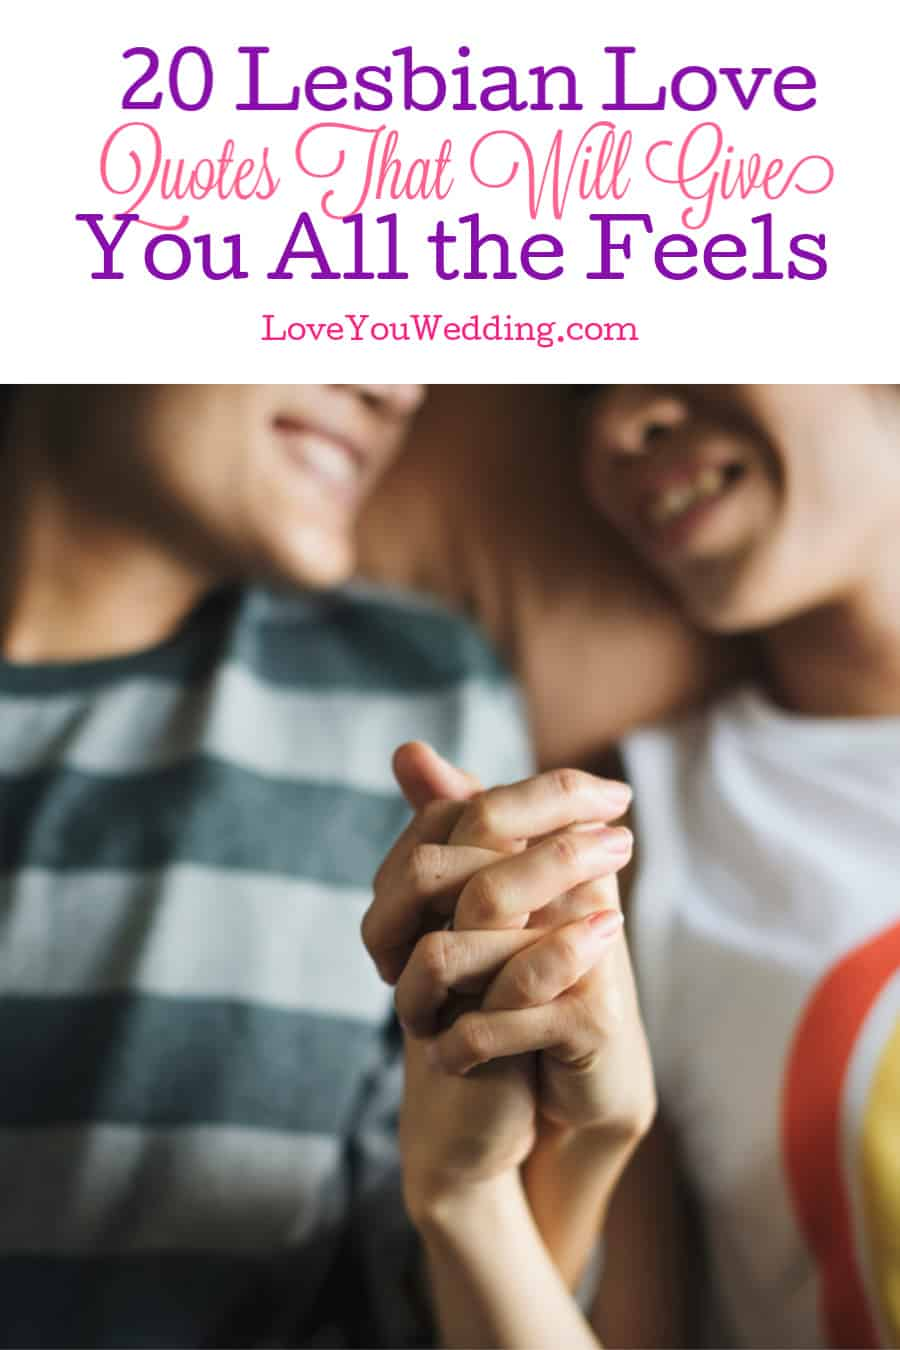 These 20 heartwarming lesbian love quotes will hit you right in the heart. Use them as inspiration for putting your own passion into words!